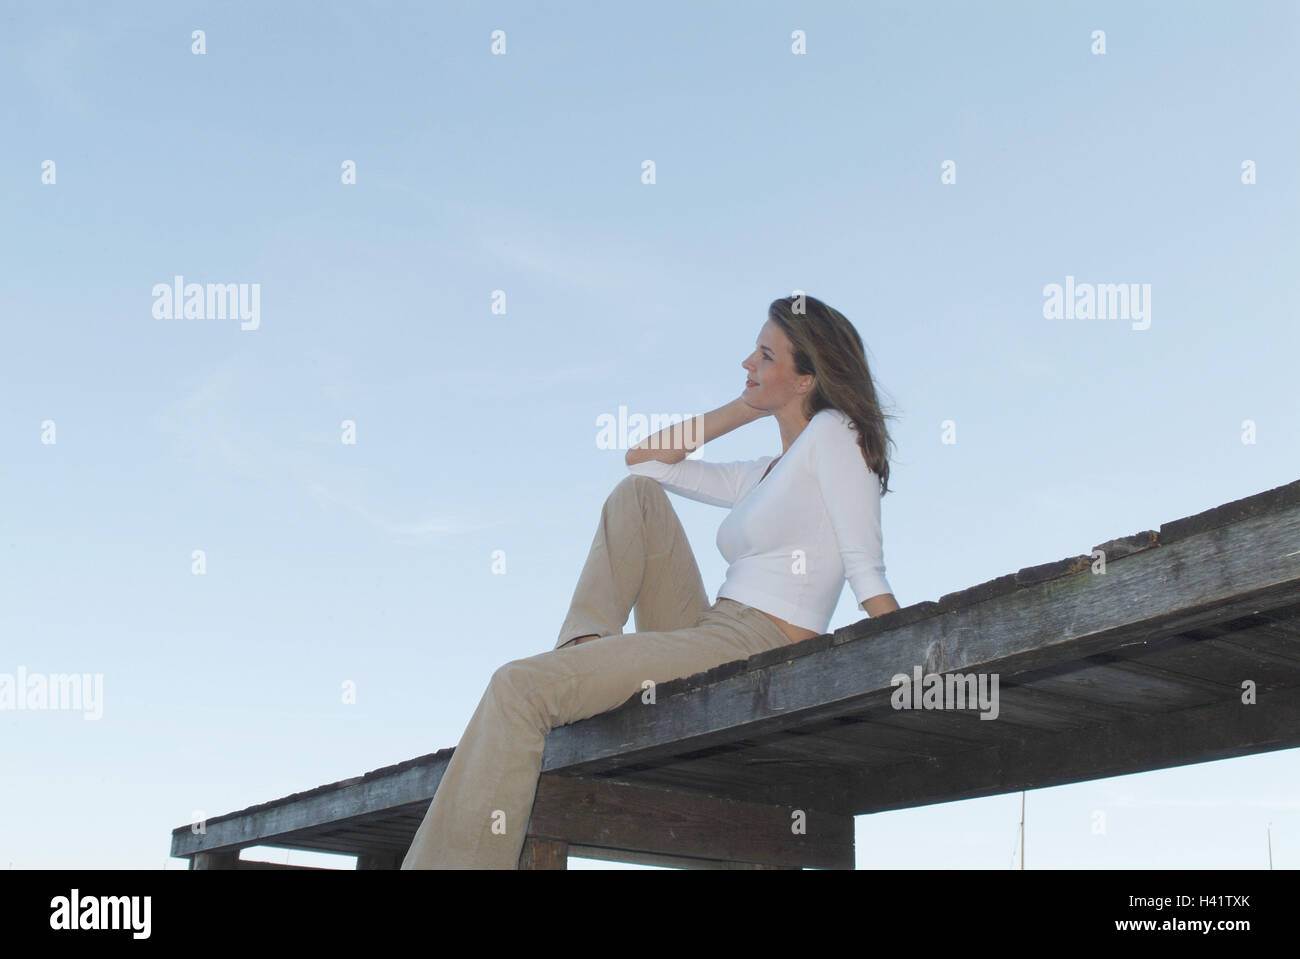 Wooden jetty, woman, young, sit, take it easy, enjoy Ti5, bridge, 28 years, leisure time, rest, loneliness, think, - Stock Image